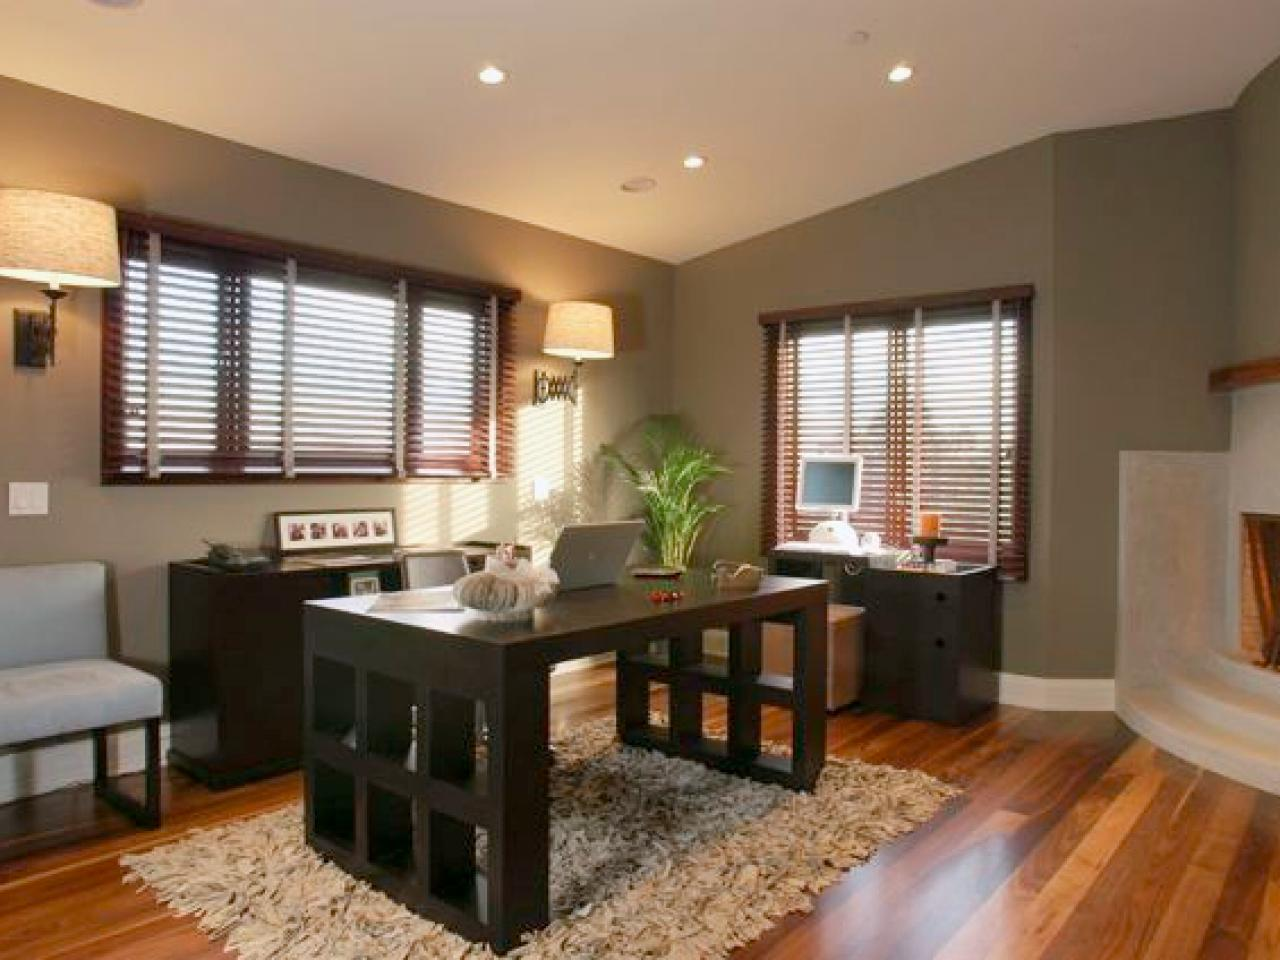 Awesome Design Of The Brown Wooden Floor Ideas Added With Brown Wooden Table And Grey Wall Ideas For The Office Home Areas